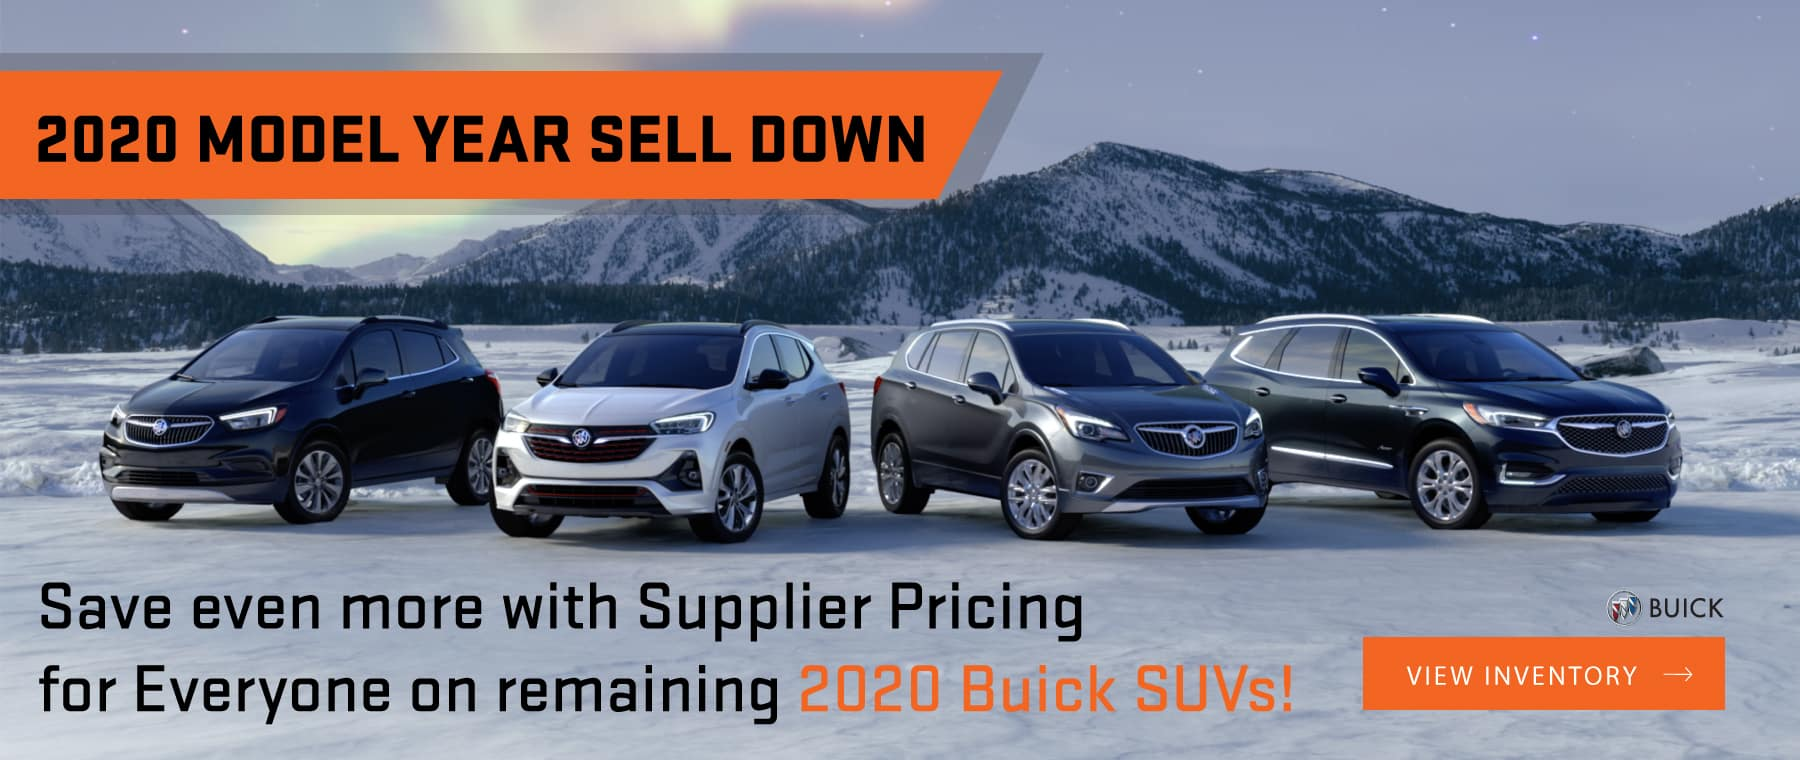 2020 Buick Model Year End Sell Down